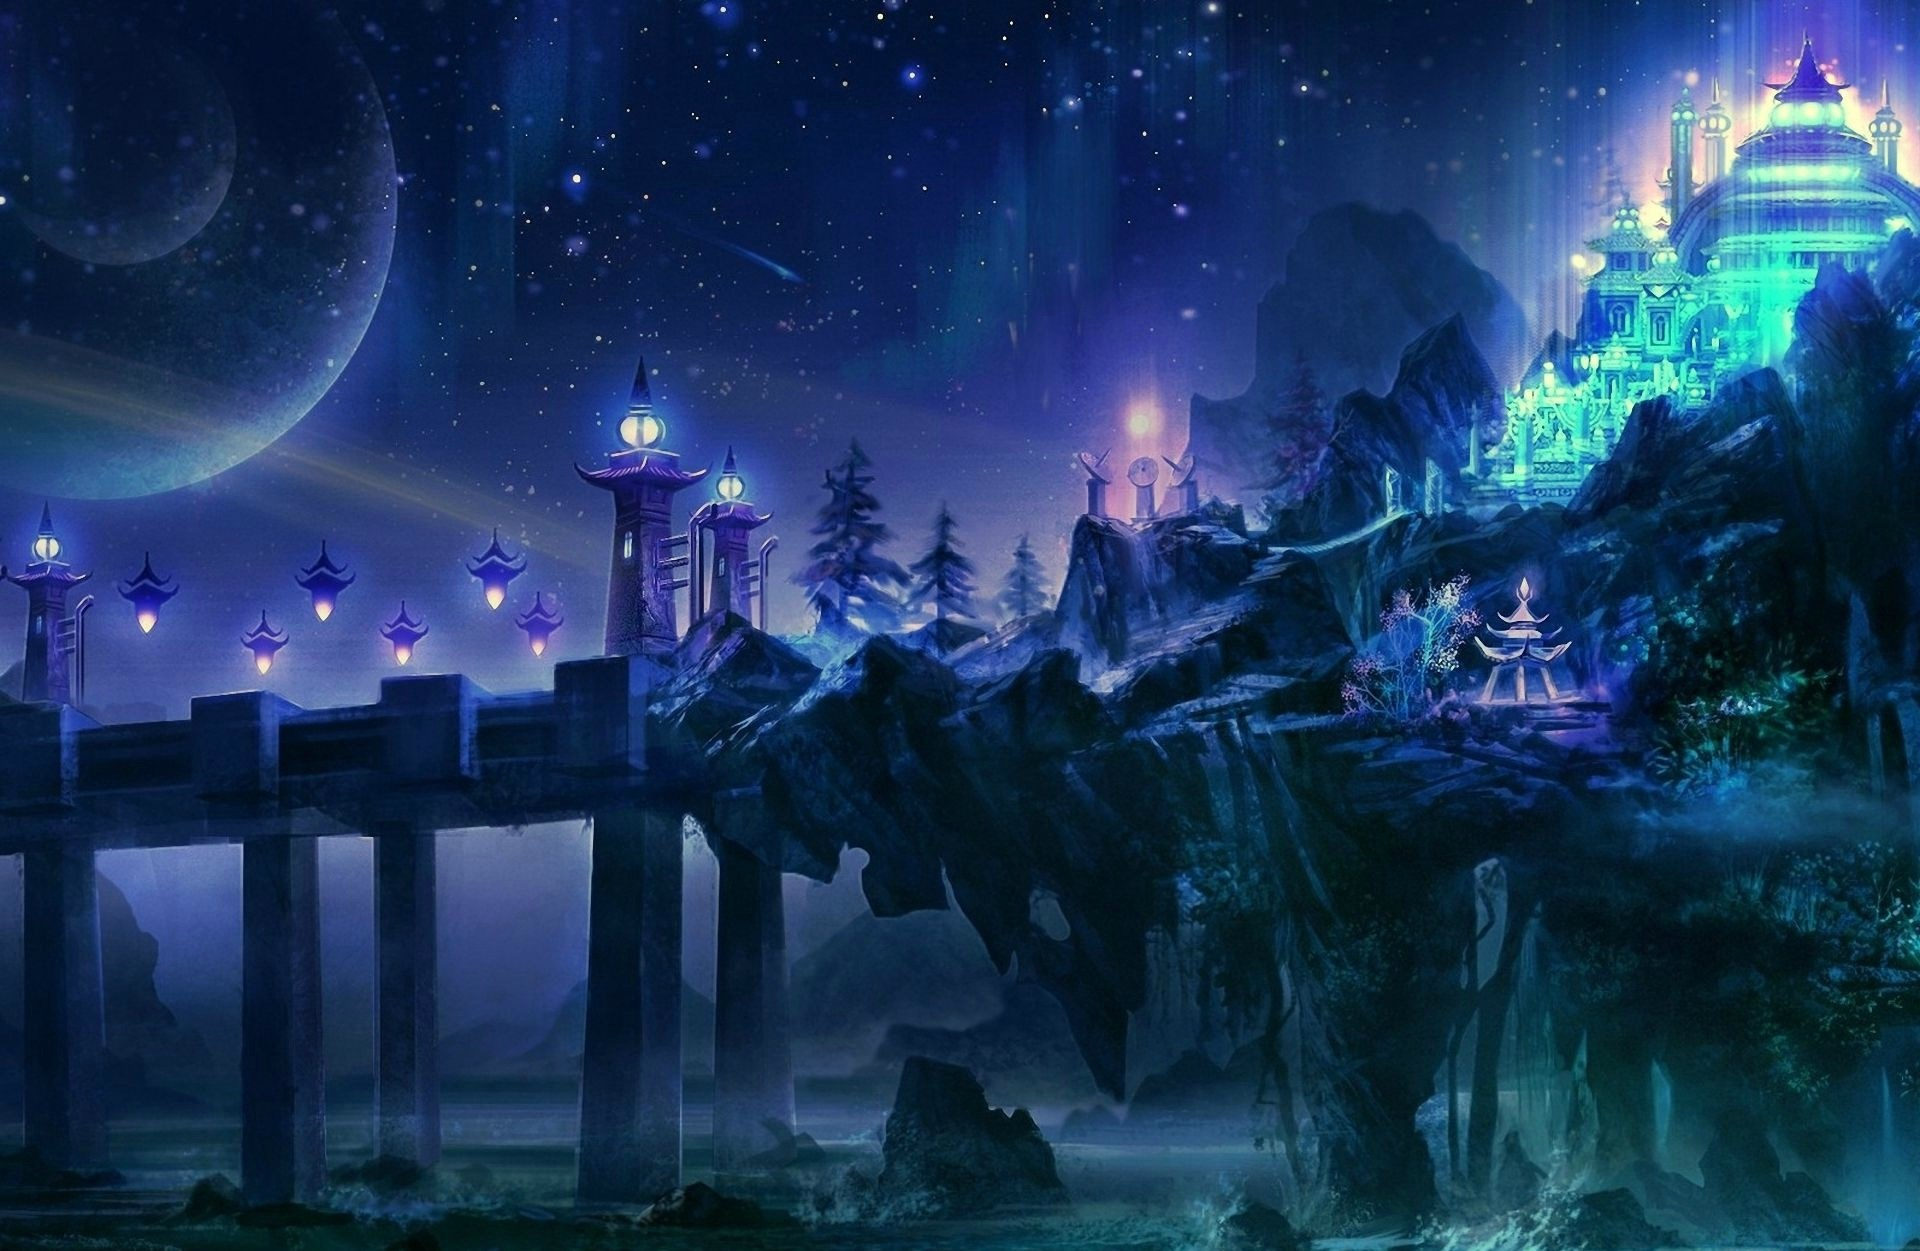 1920 X 1251 Px Free Download Pictures Of Dark Castle - Starry Night Fantasy Art , HD Wallpaper & Backgrounds